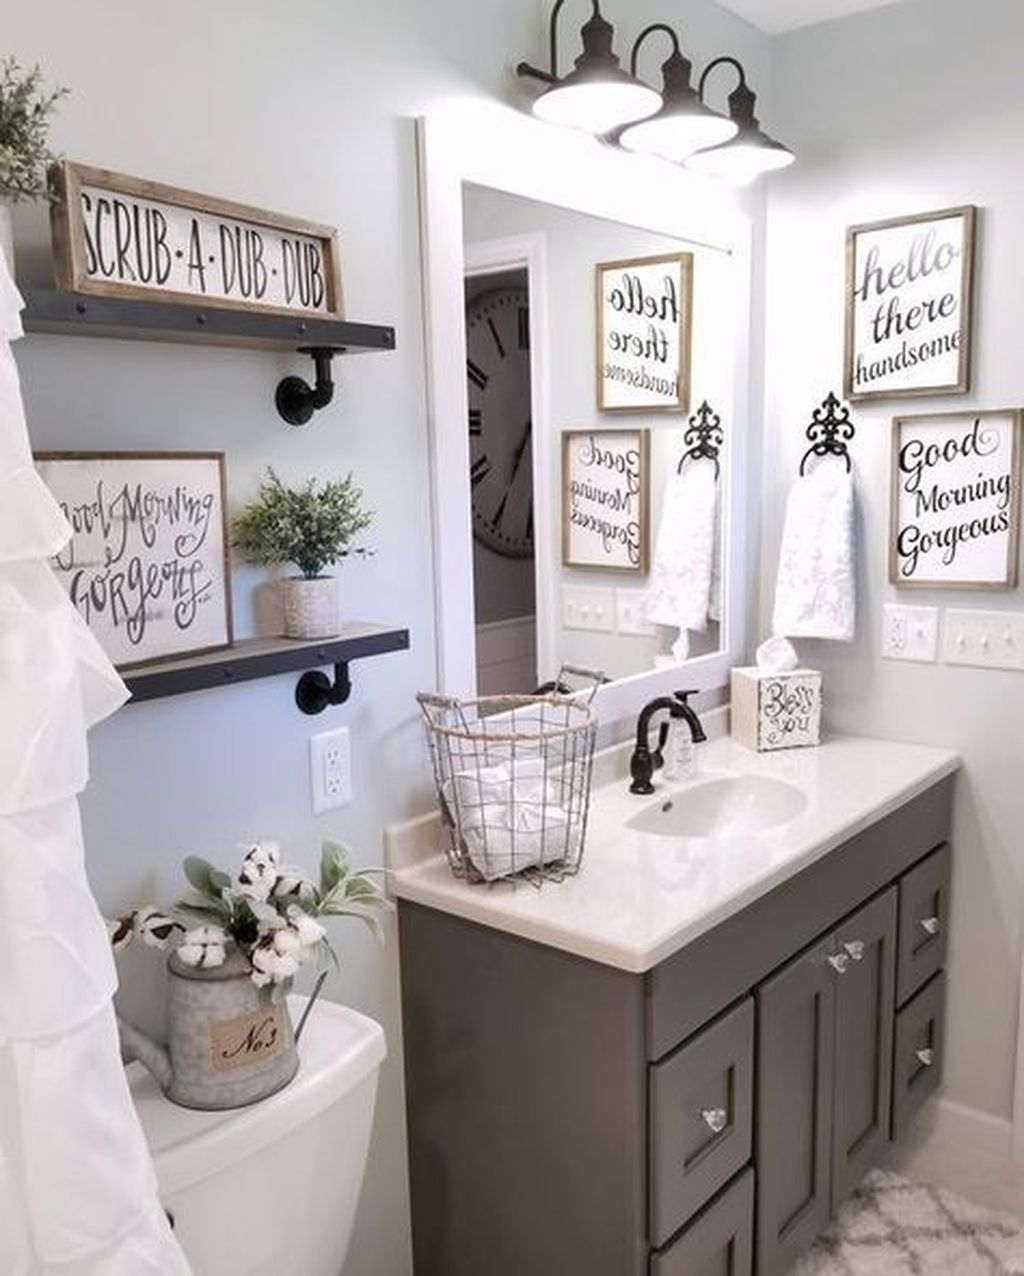 50 Lovely Bathroom Decor Ideas With Farmhouse Style Farmhouse Bathroom Decor Small Farmhouse Bathroom Small Bathroom Decor